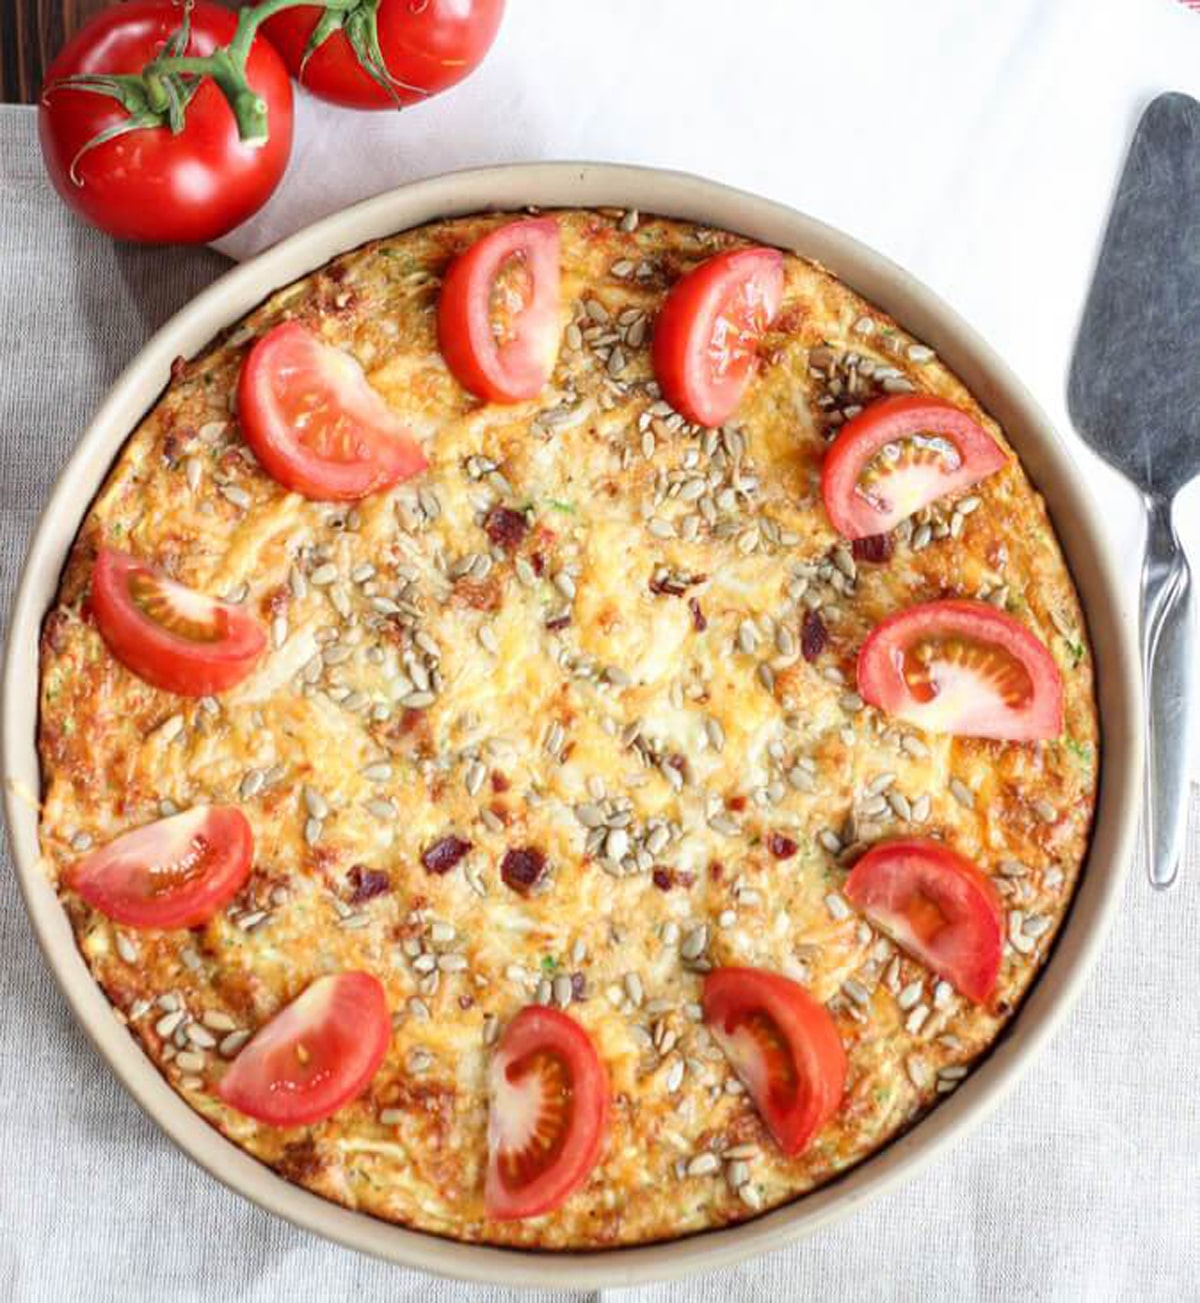 A close up of a round quiche with sliced tomatoes on top.